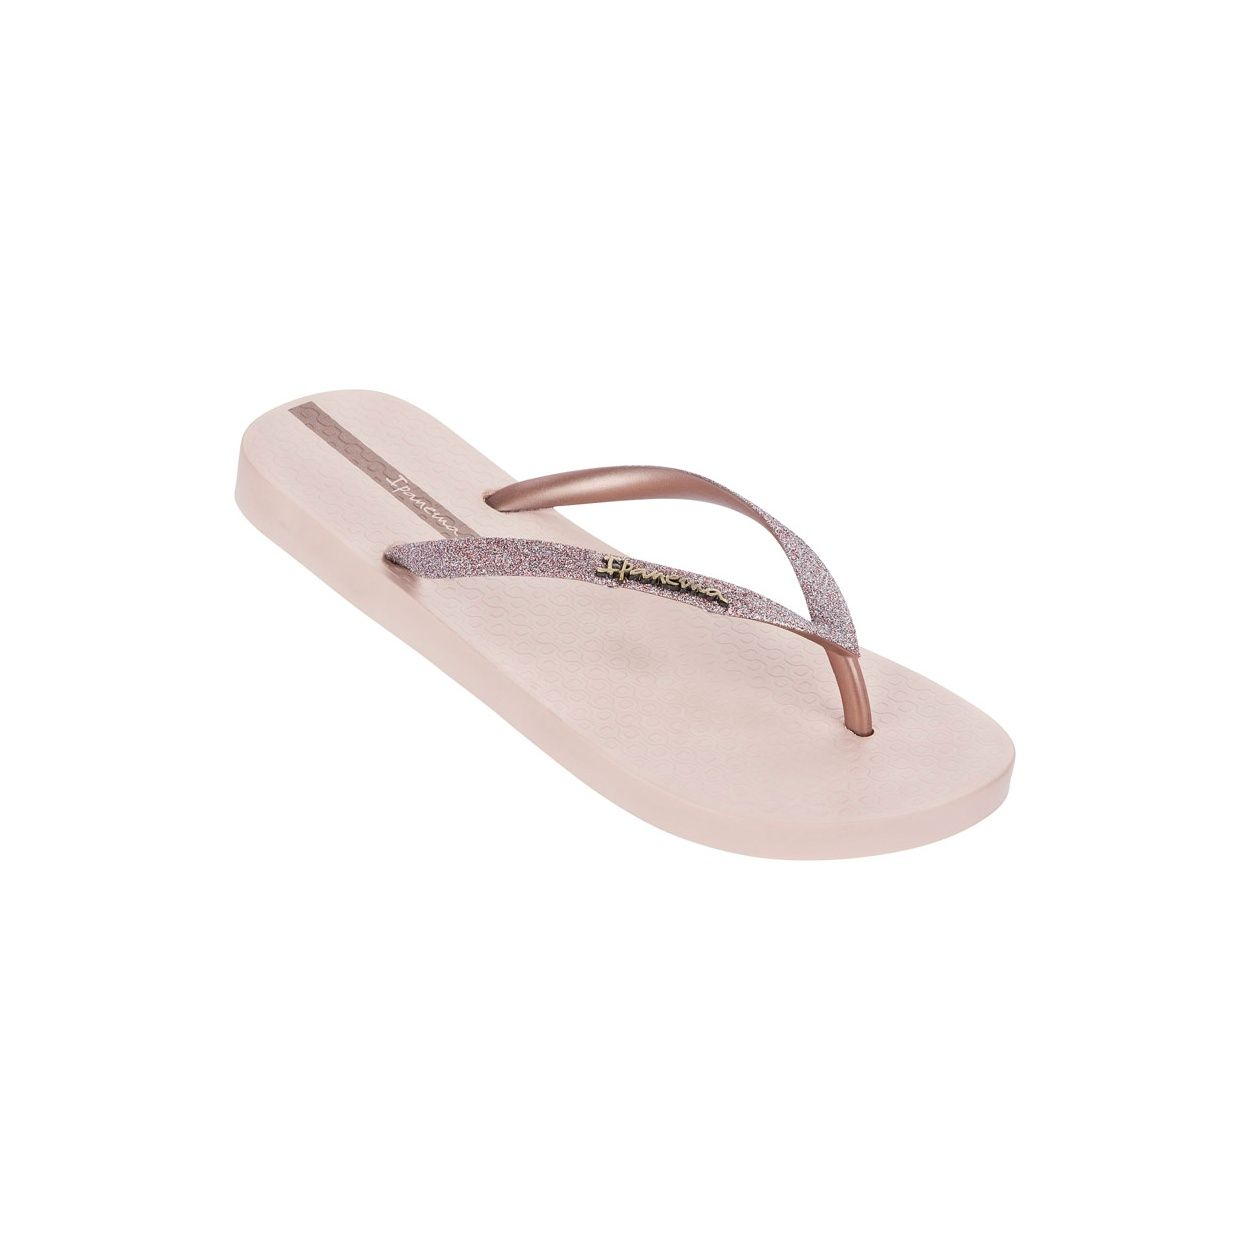 6c17e5475fbe The Ipanema Sparkle flip flop is a stunner